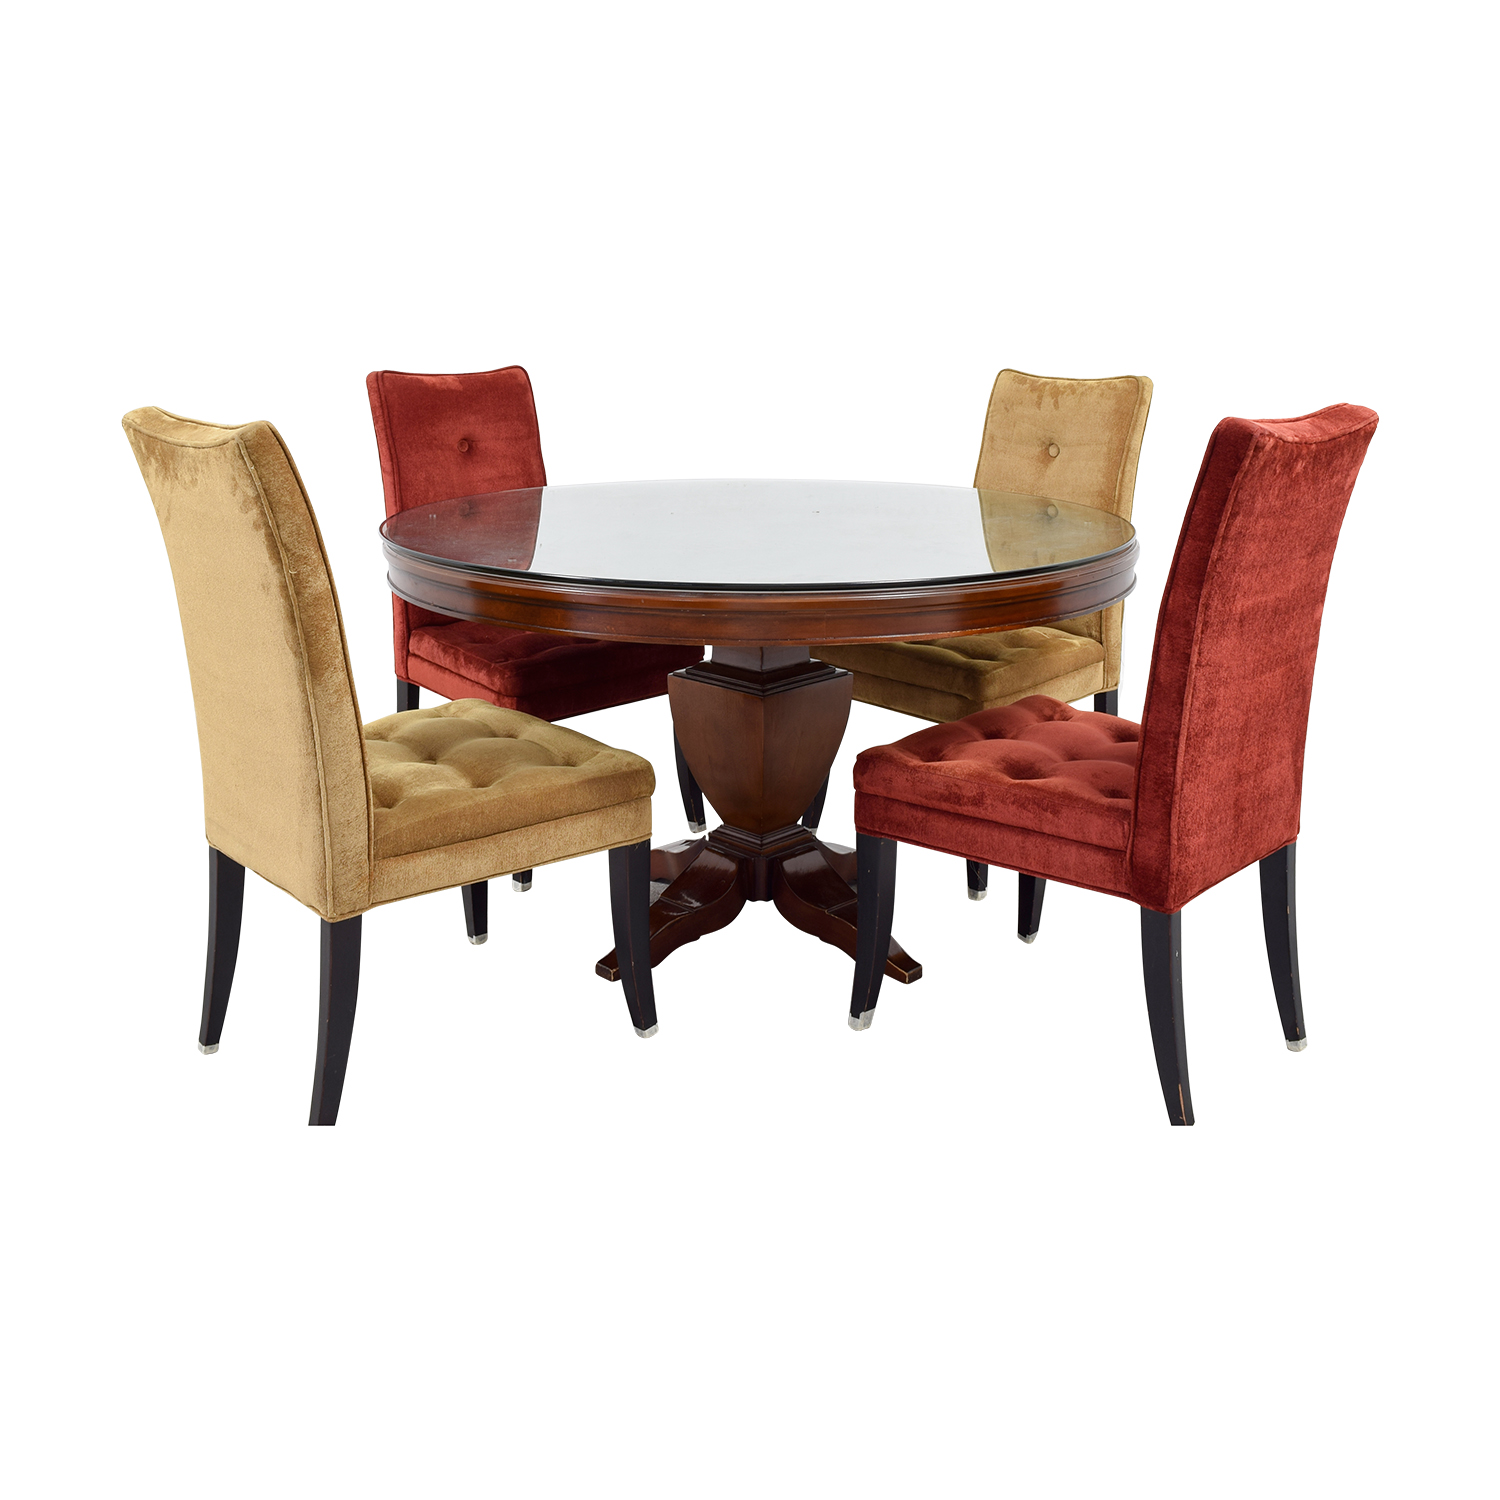 69% OFF   Bombay Company Bombay Artisan Round Dining Table With Red U0026 Beige  Chairs / Tables